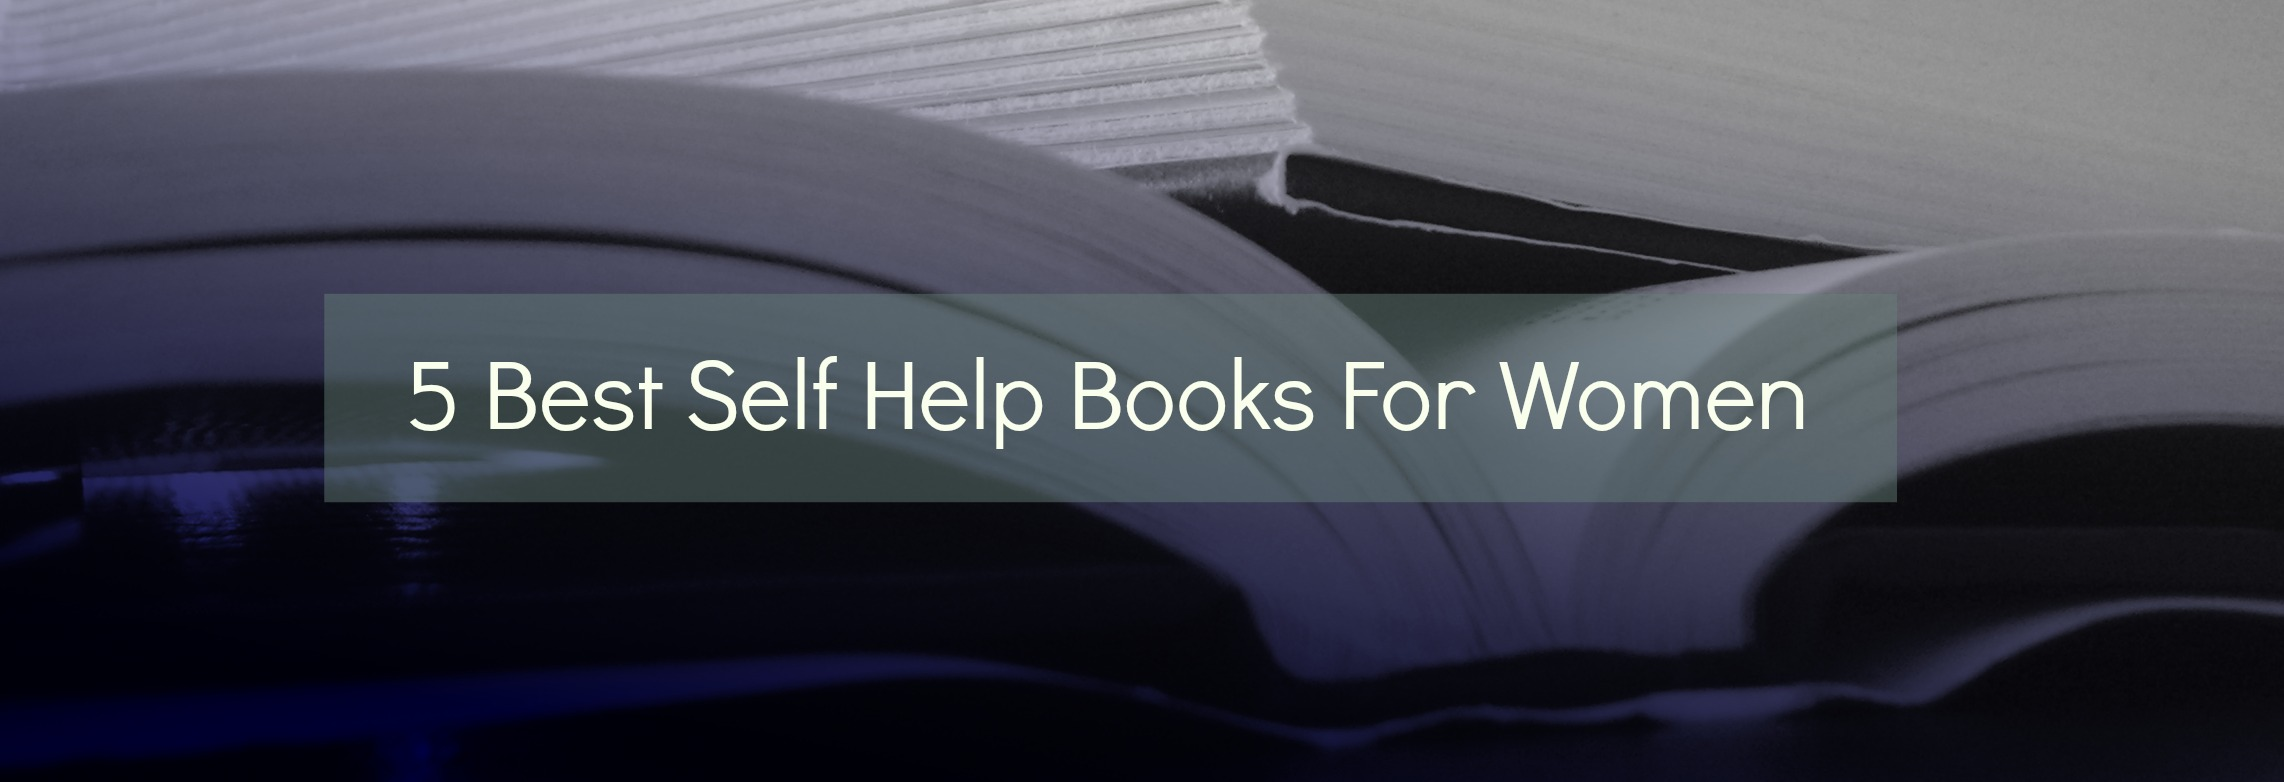 best self help books for women